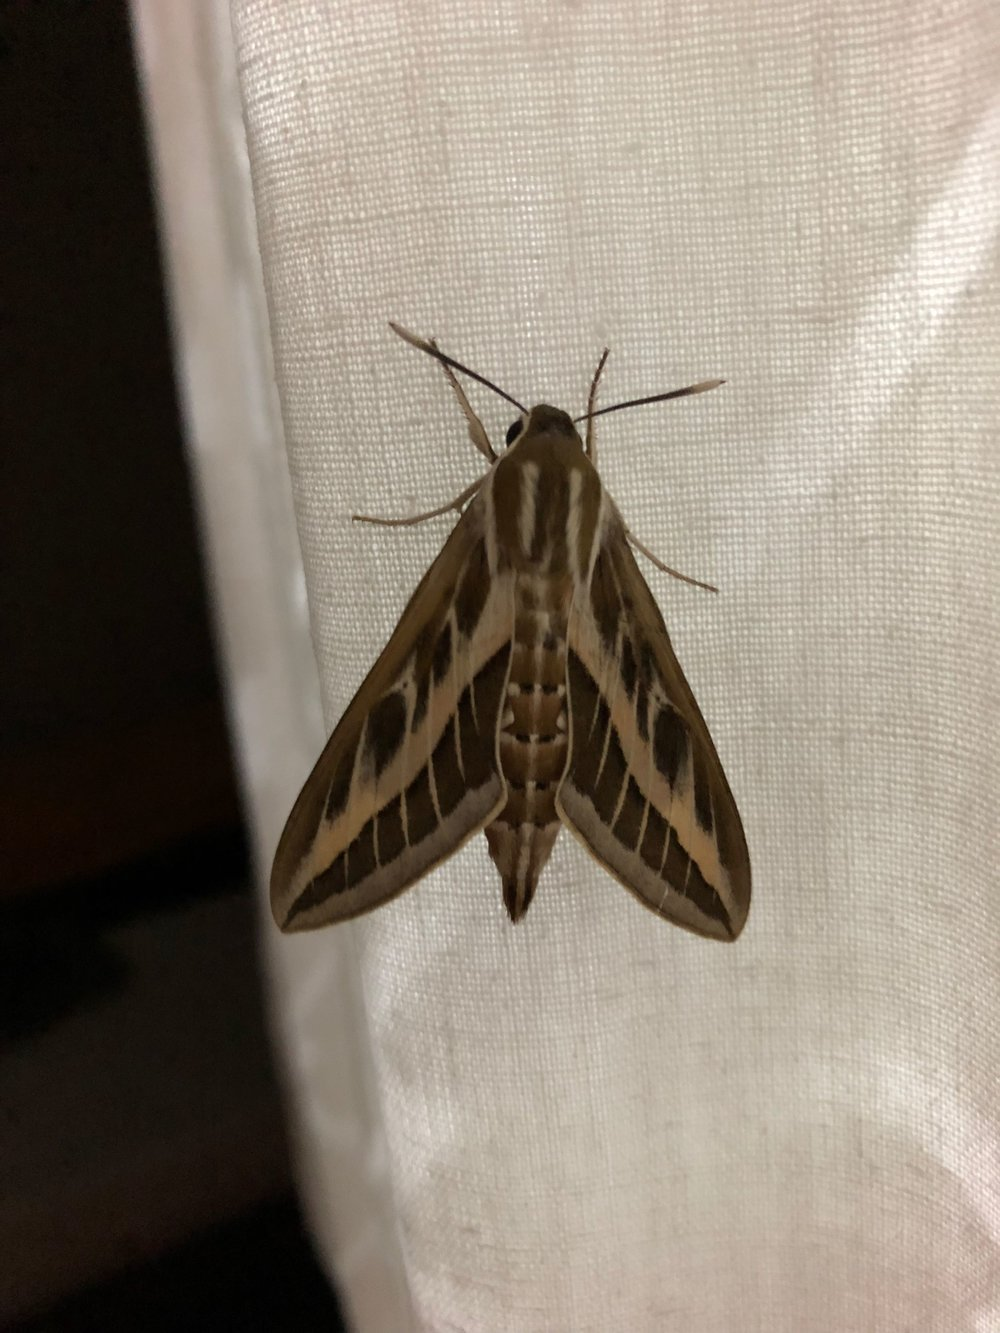 August 18th.  I'm not at all into Moths and Butterflies, but some are so obliging even I cannot escape from them. If I'm right this is a Striped Hawkmoth.